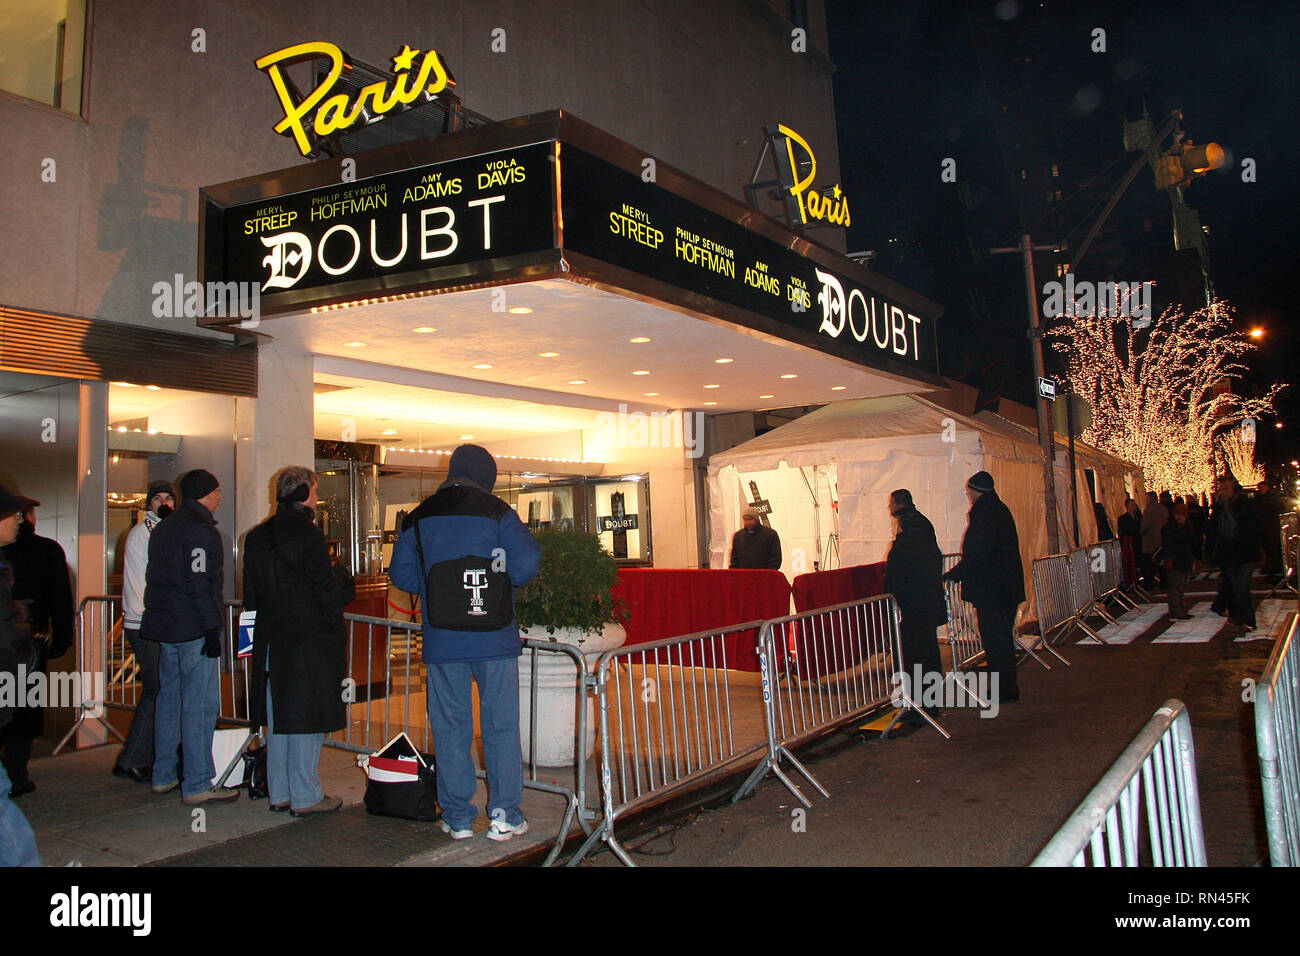 New York, USA. 07 Dec, 2008. Atmosphere, exterior at The Sunday, Dec 7, 2008 New York Premiere for 'Doubt' Presented By Miramax Films at The Paris Theater in New York, USA. Credit: Steve Mack/S.D. Mack Pictures/Alamy - Stock Image